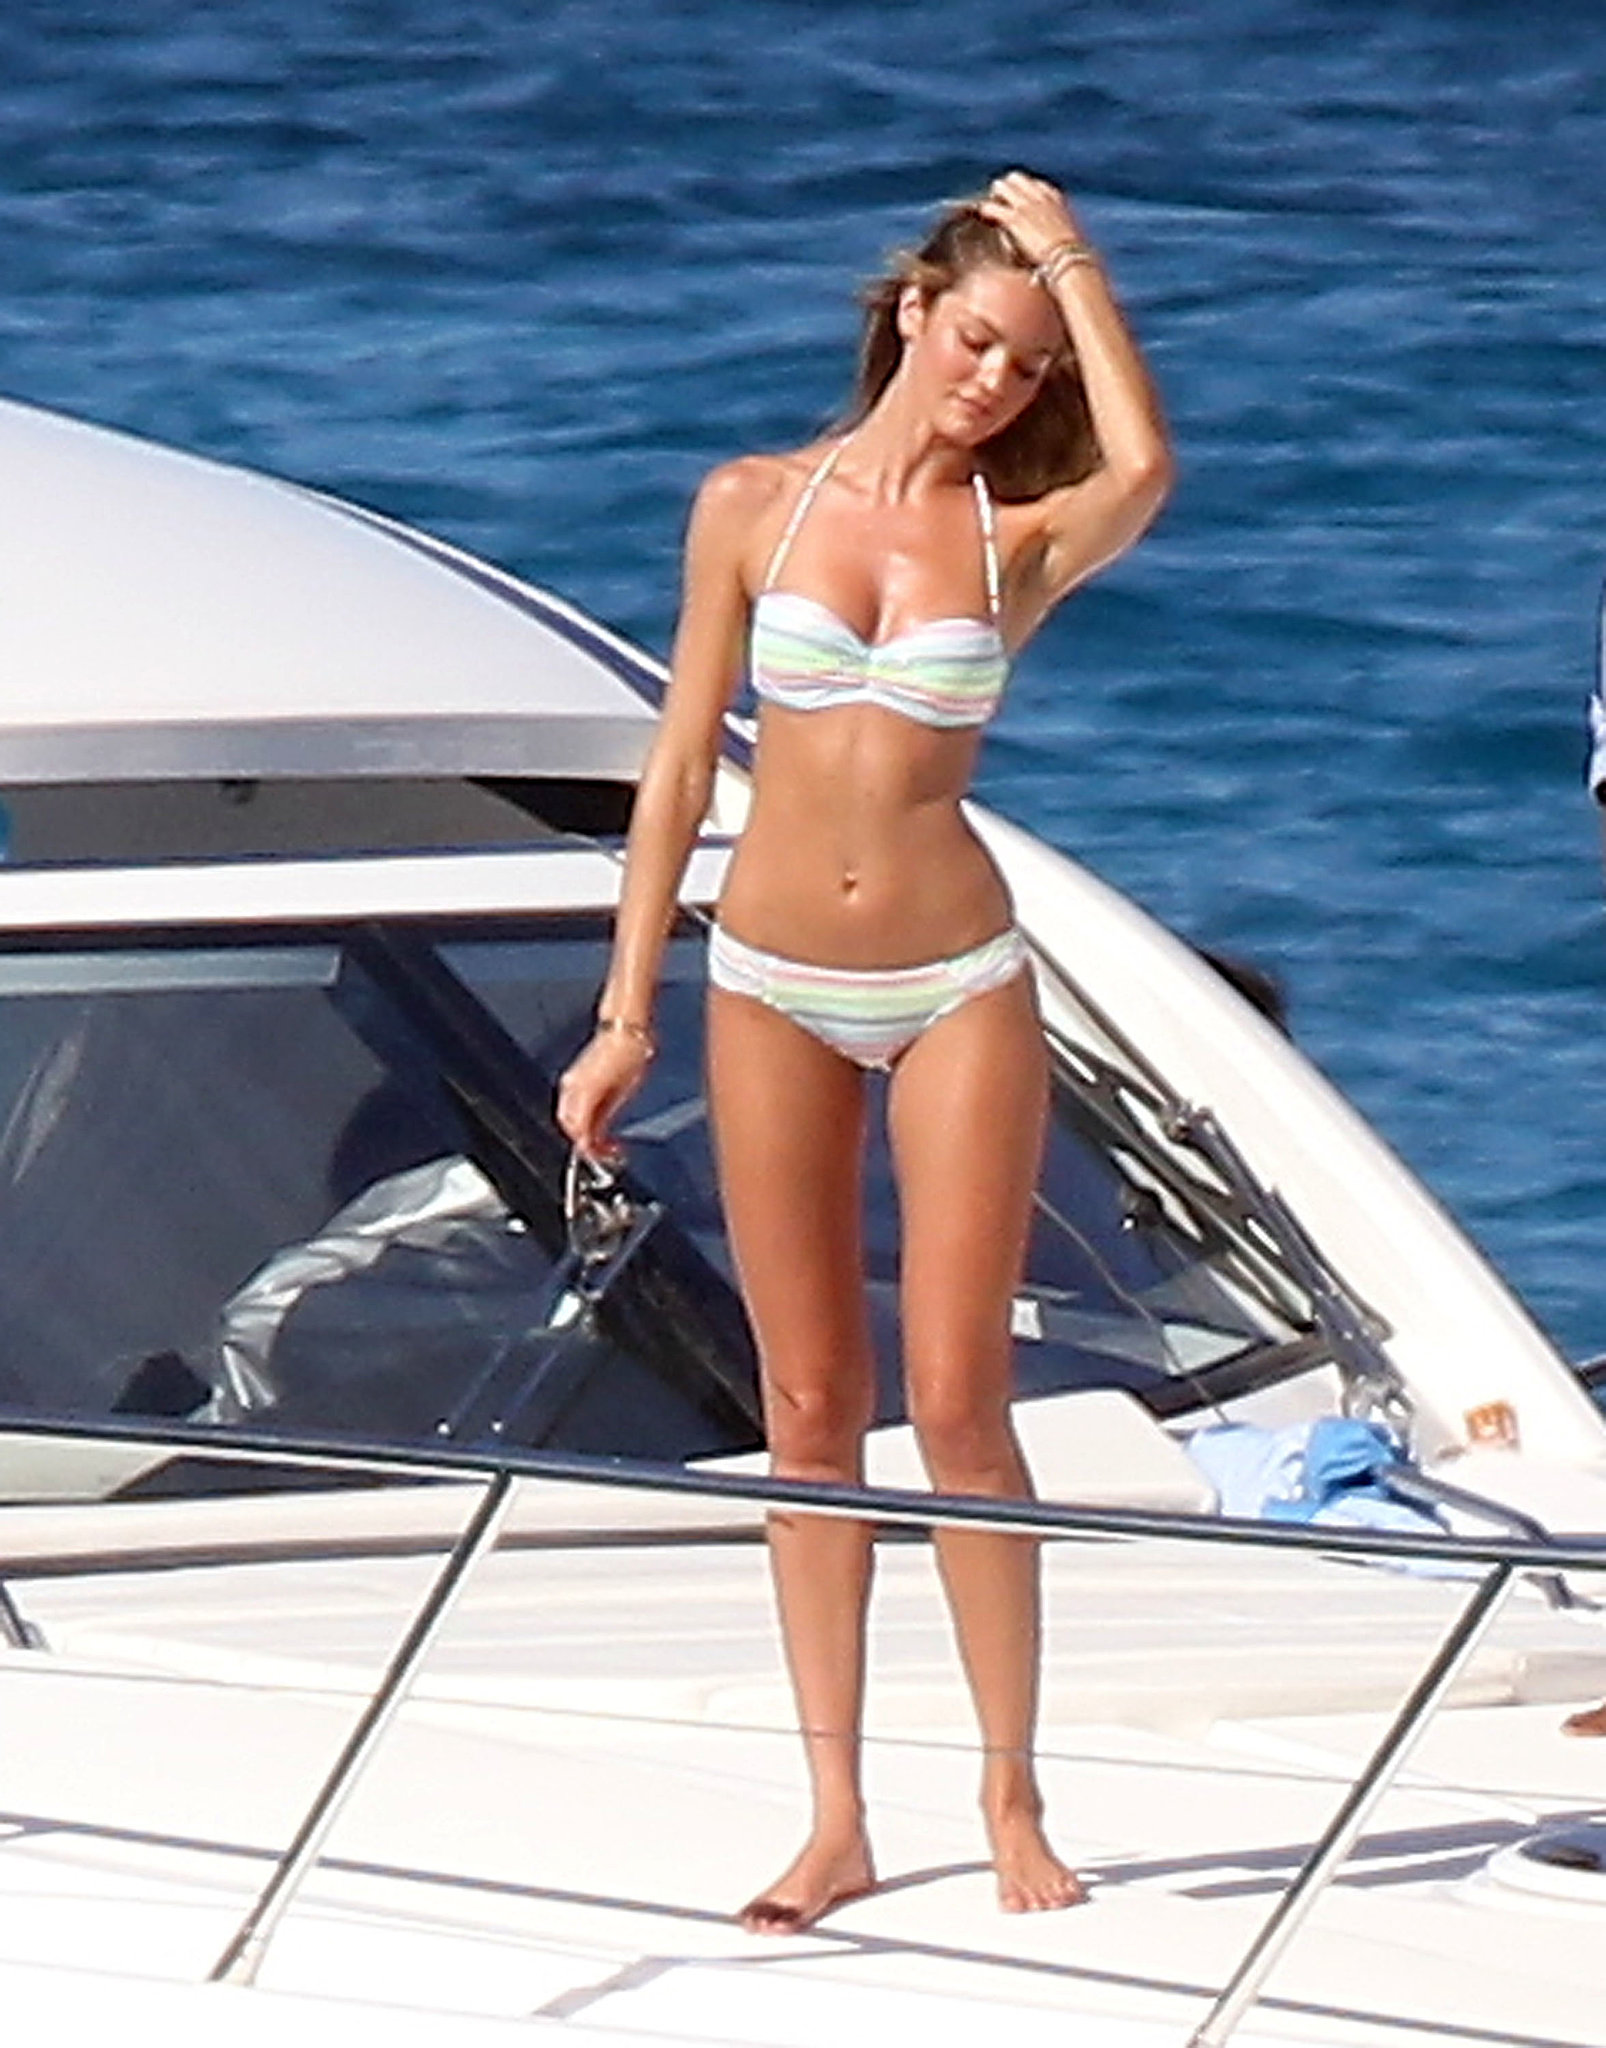 Candice Swanepoel modeled bikinis on a yacht for a Victoria's Secret shoot in St. Barts in January 2013.